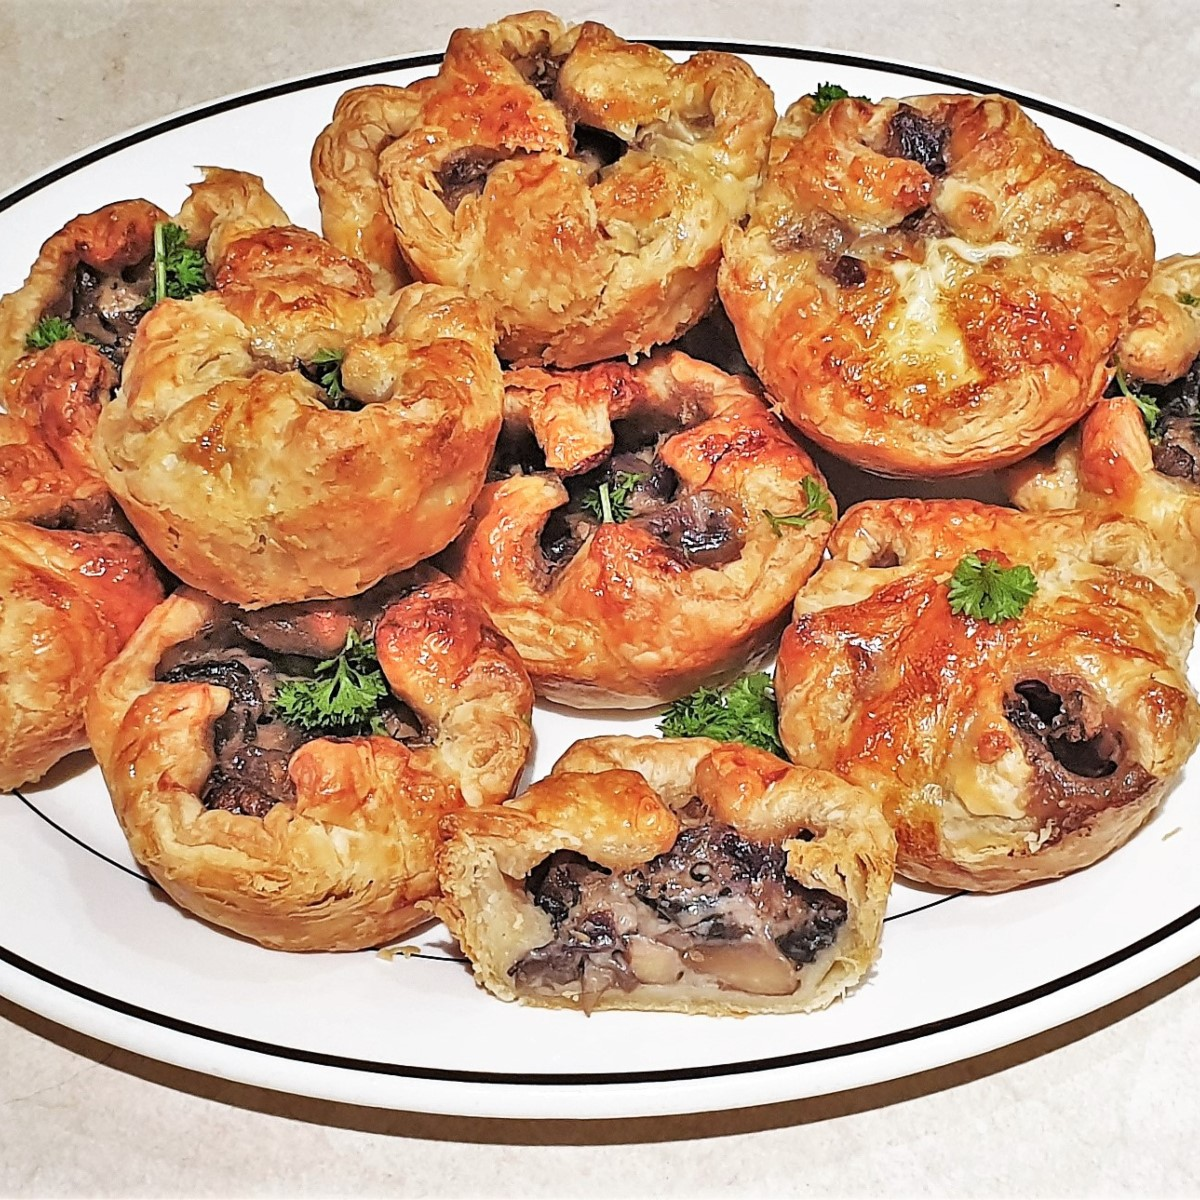 A serving dish piled with mushroom tarts.